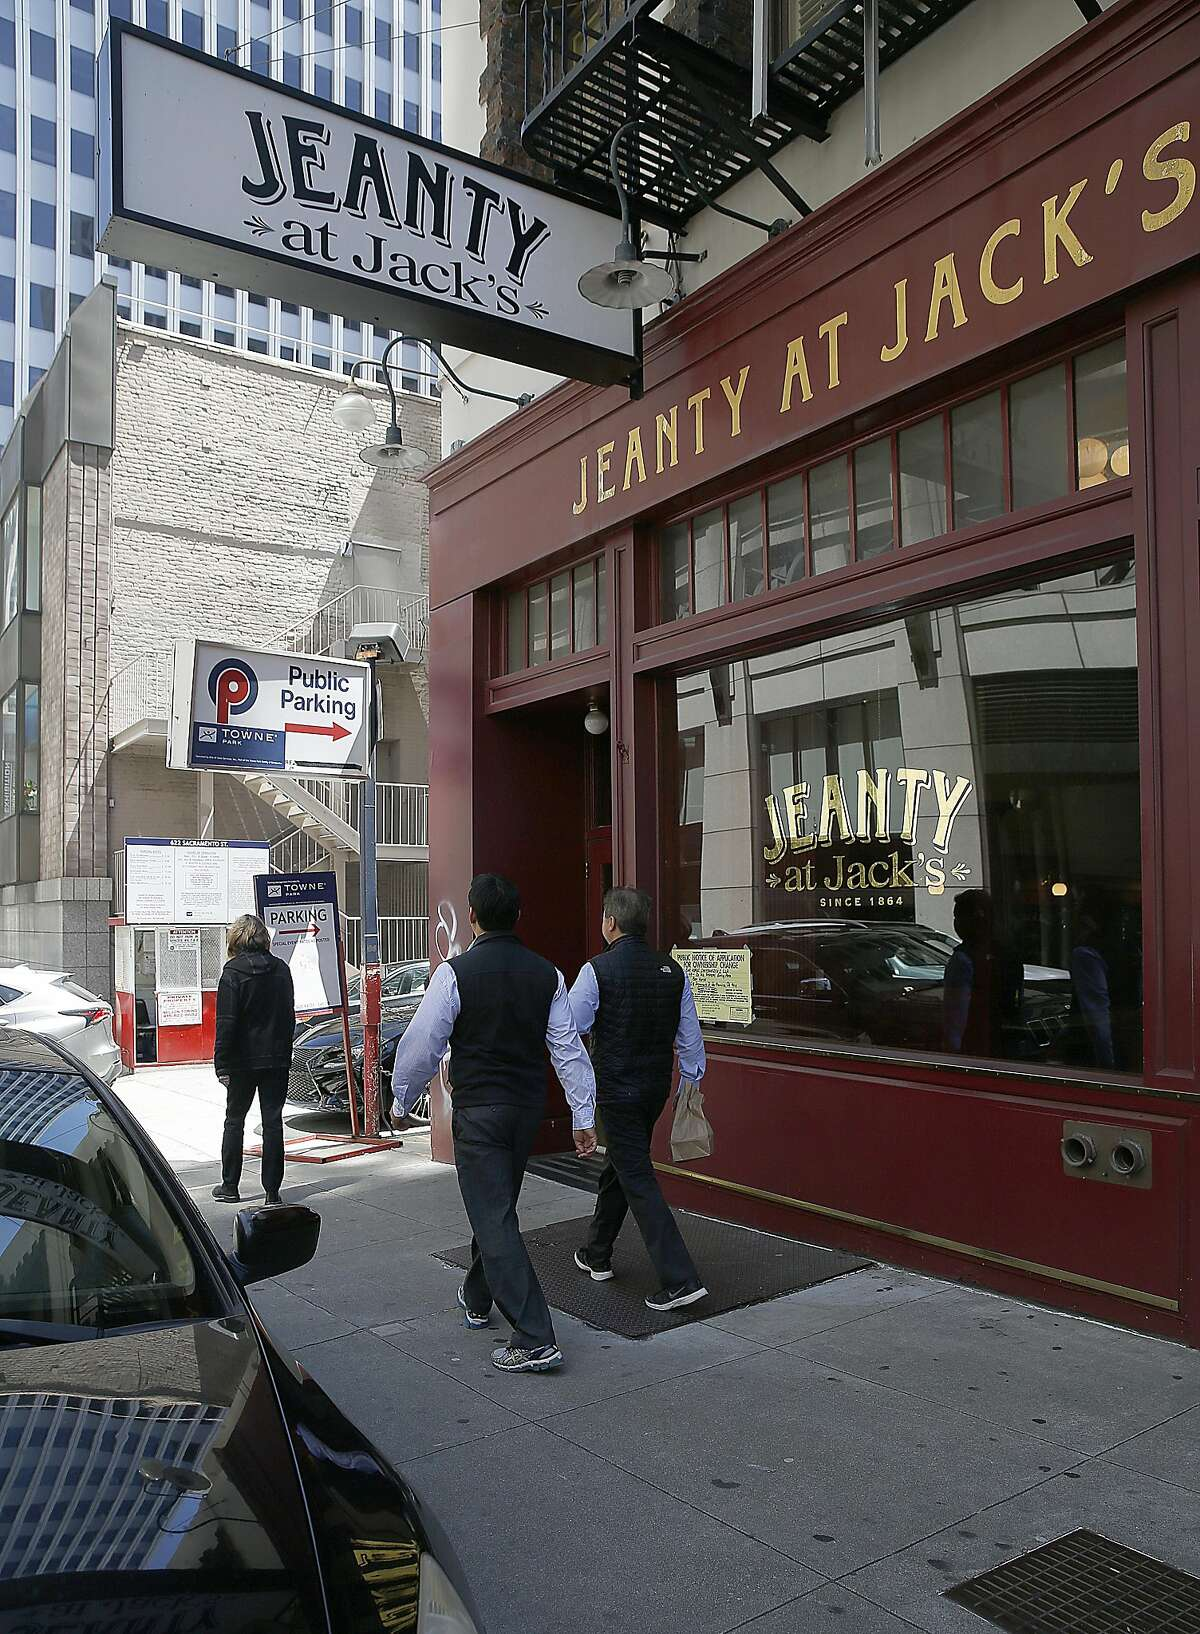 Jack's restaurant is set to become a co-working space on Monday, August 8, 2016, in San Francisco, Calif. Bar Works purchased the freehold to the 6,000 sq ft building for a reported $3.55 million dollars.